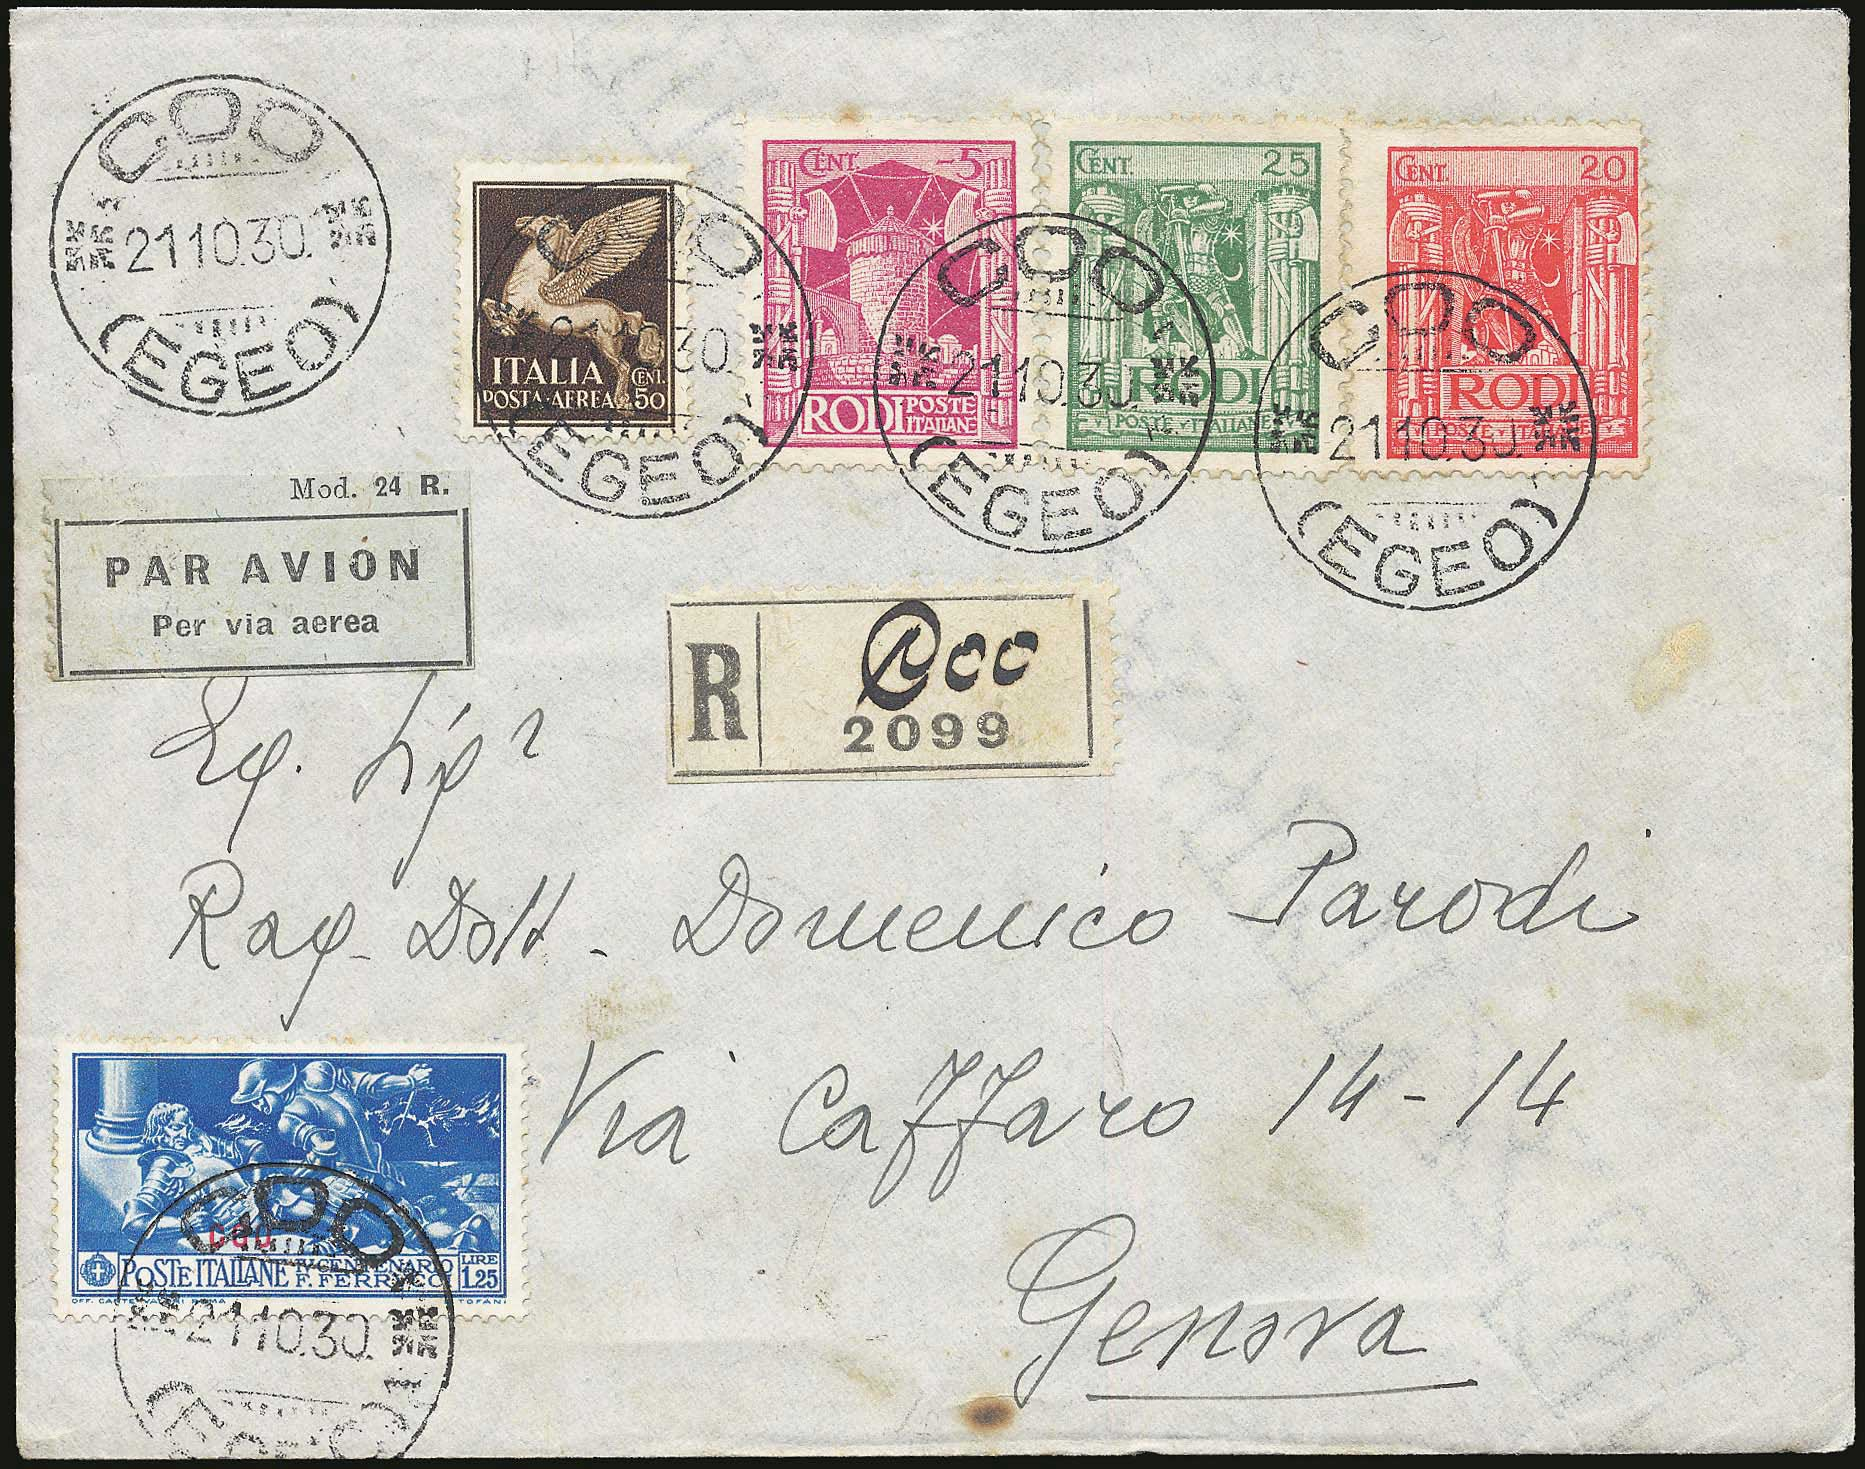 Lot 674 - -  DODECANESE italian dodecanese - italian post office issues -  A. Karamitsos Postal & Live Internet Auction 681 General Philatelic Auction